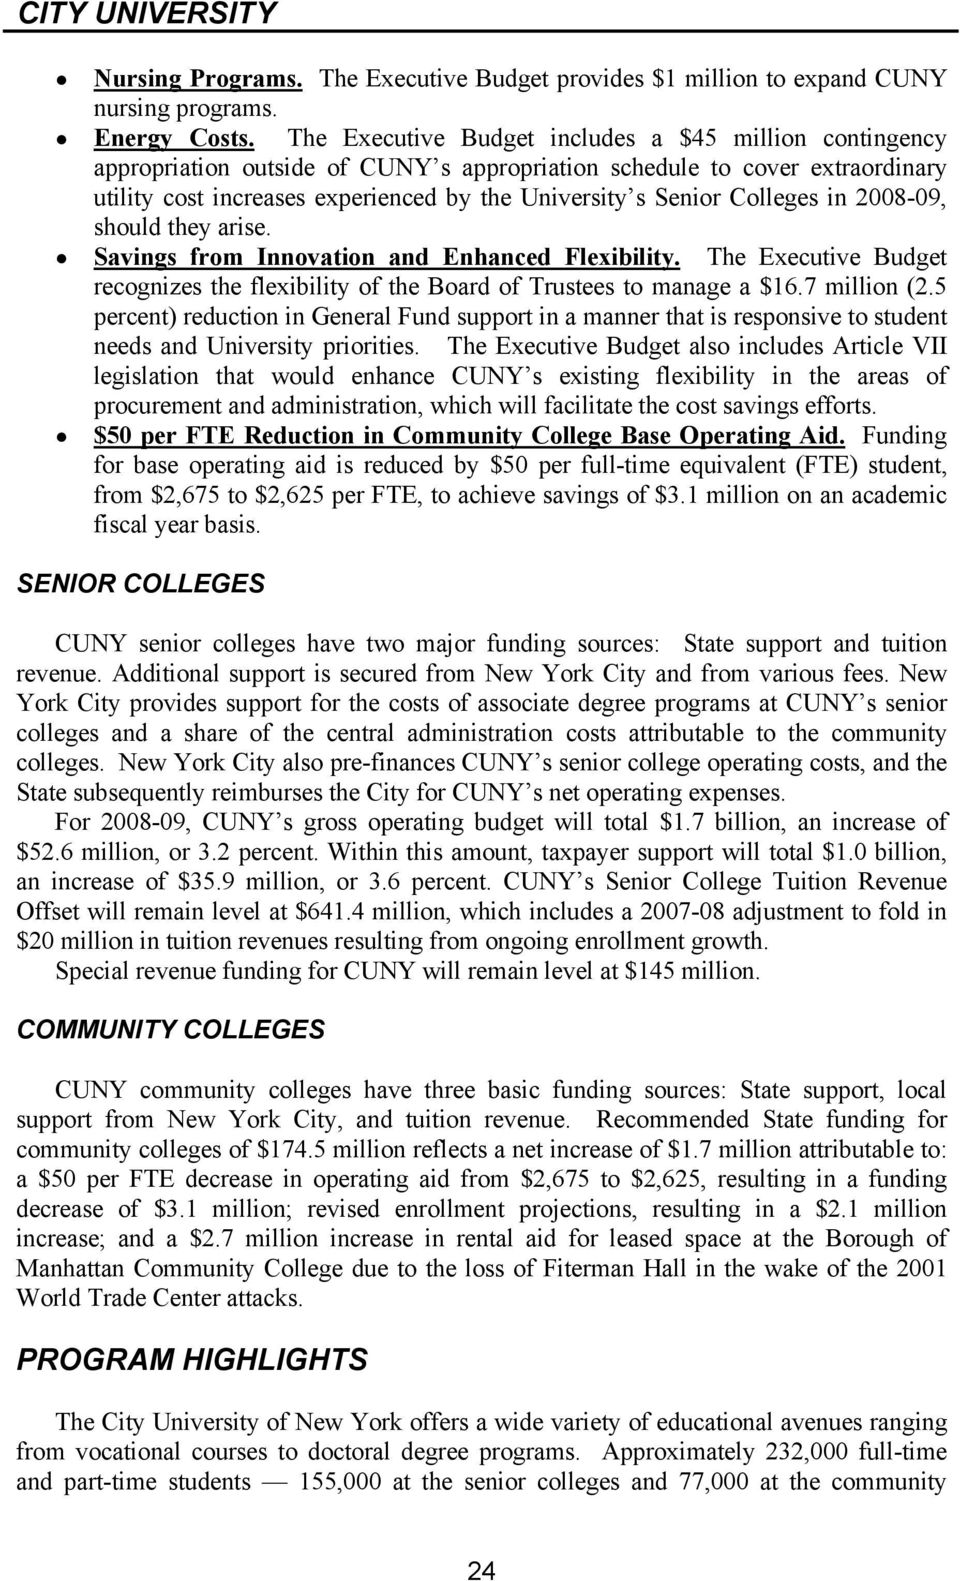 Colleges in 2008-09, should they arise. Savings from Innovation and Enhanced Flexibility. The Executive Budget recognizes the flexibility of the Board of Trustees to manage a $16.7 million (2.